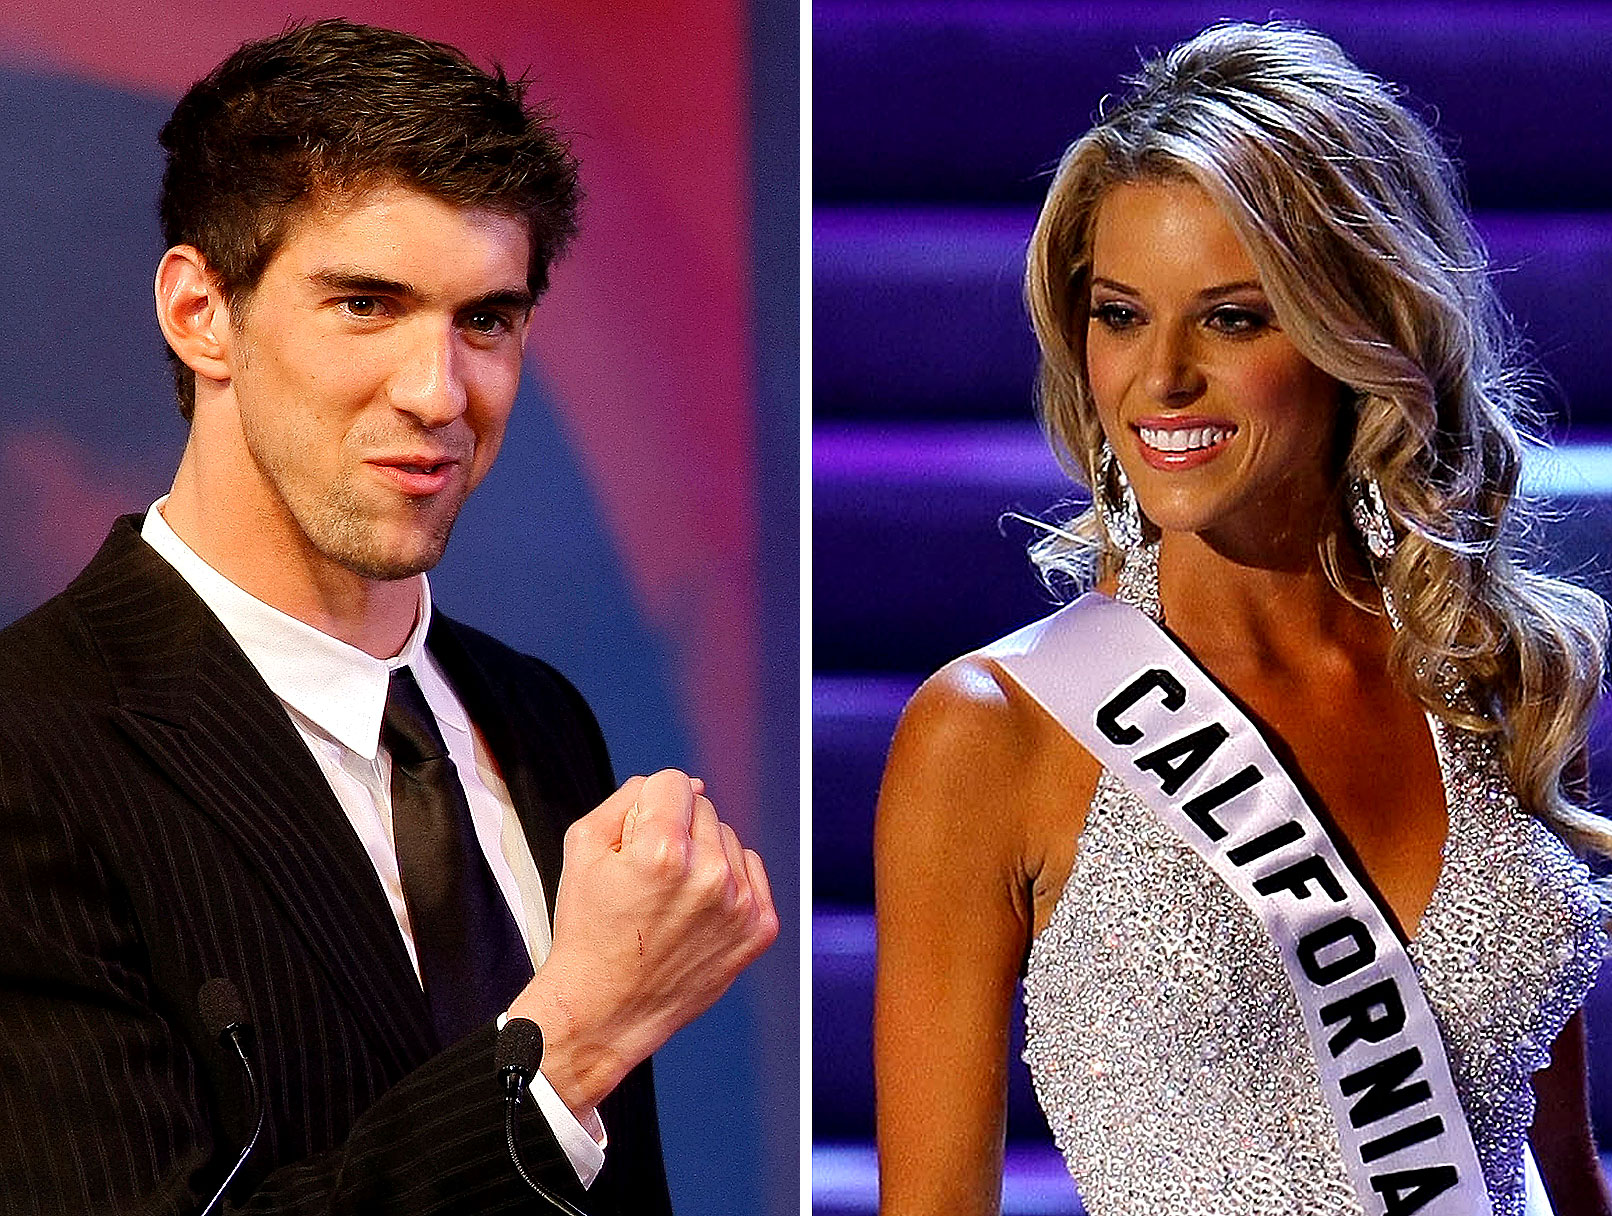 UPDATE: Michael Phelps Denies Dating Miss California